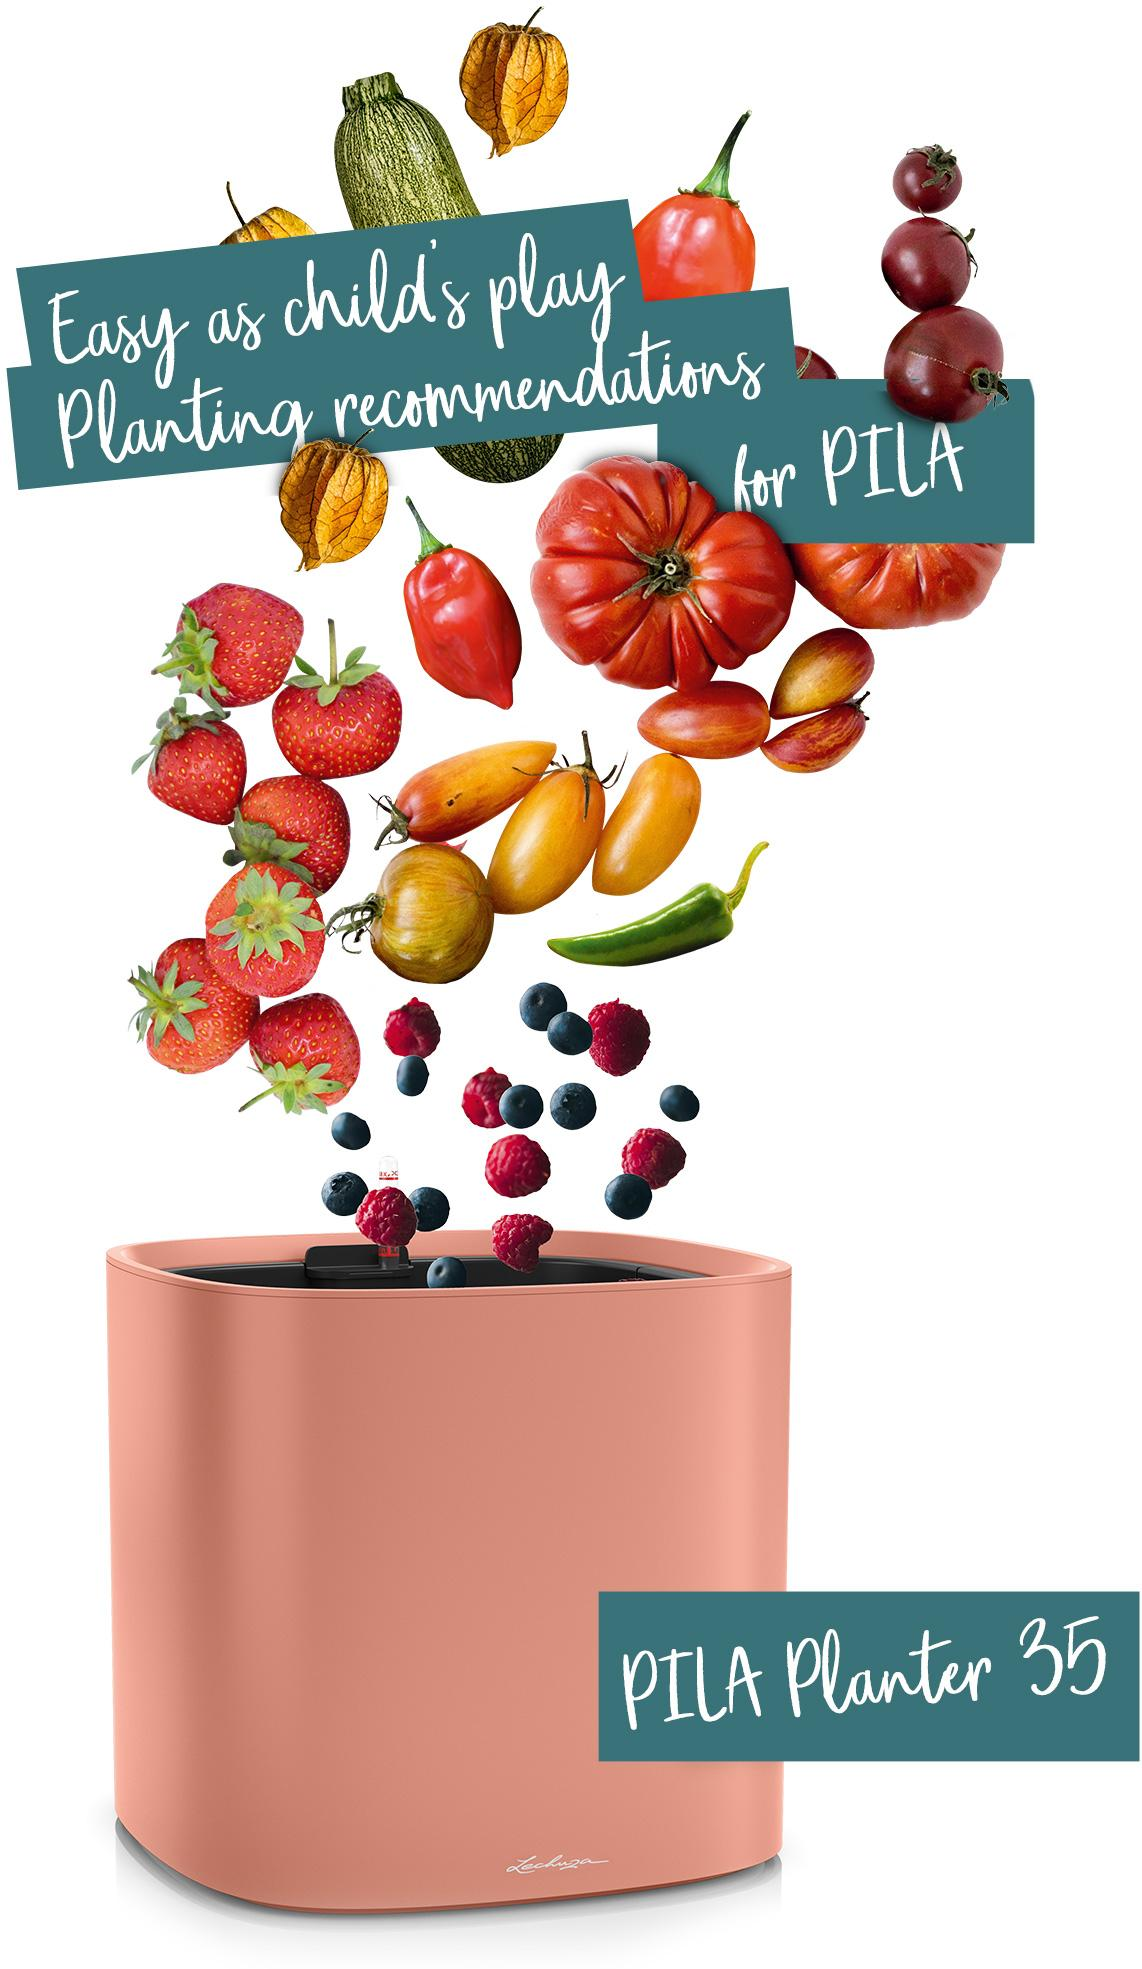 PILA Planter 35 recommended for fruit and vegetables